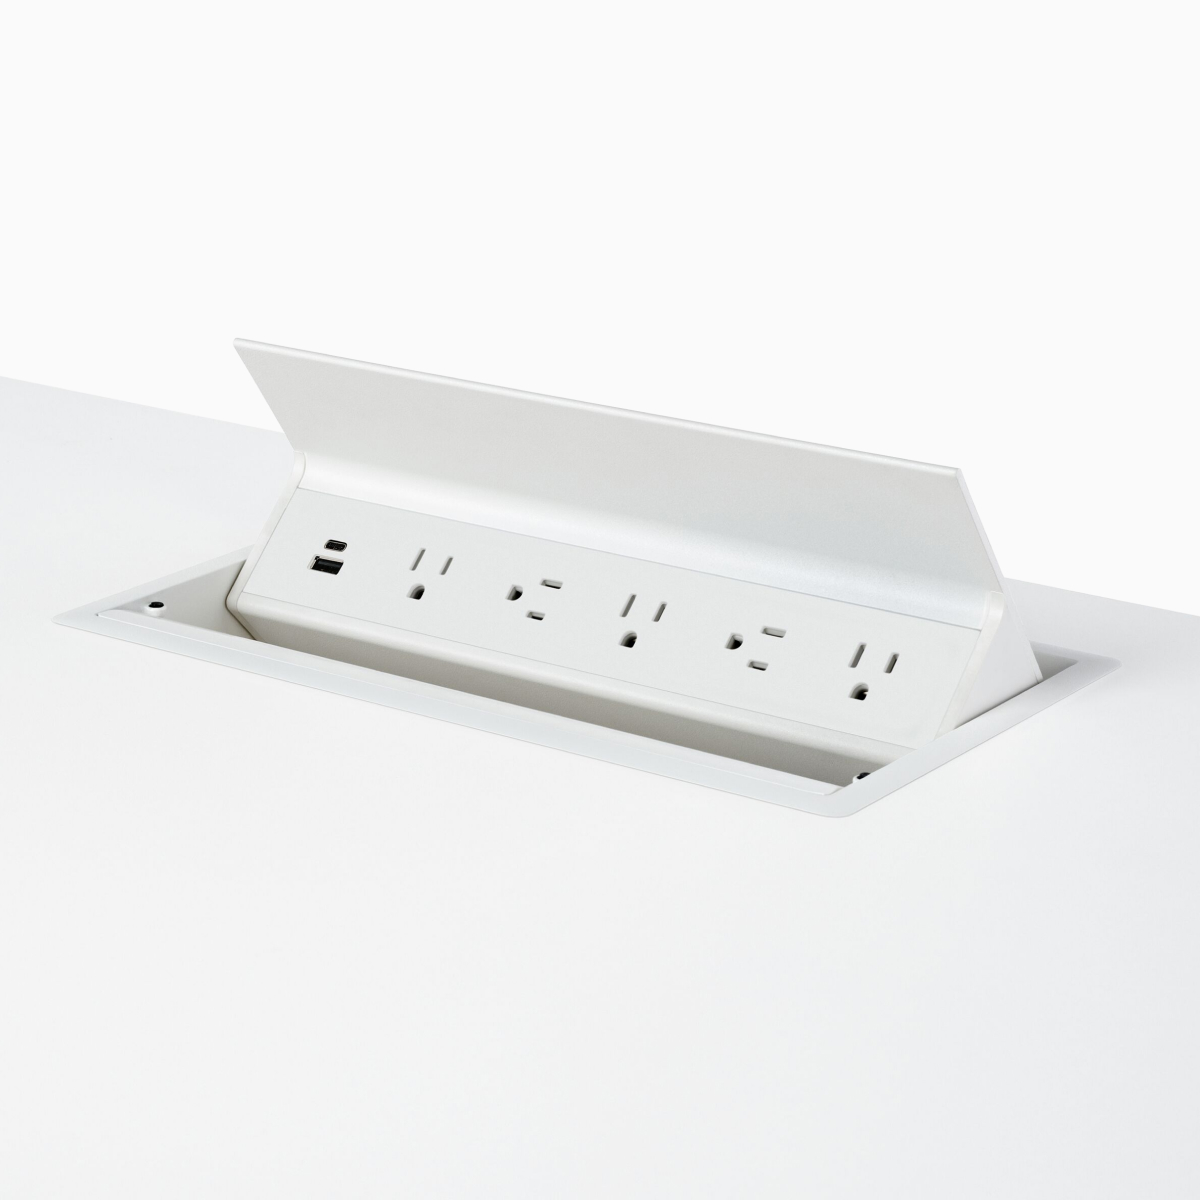 A white Logic G1000 with two USB connections and five power outlets integrated in the work surface of a Renew Sit-to-Stand Table.